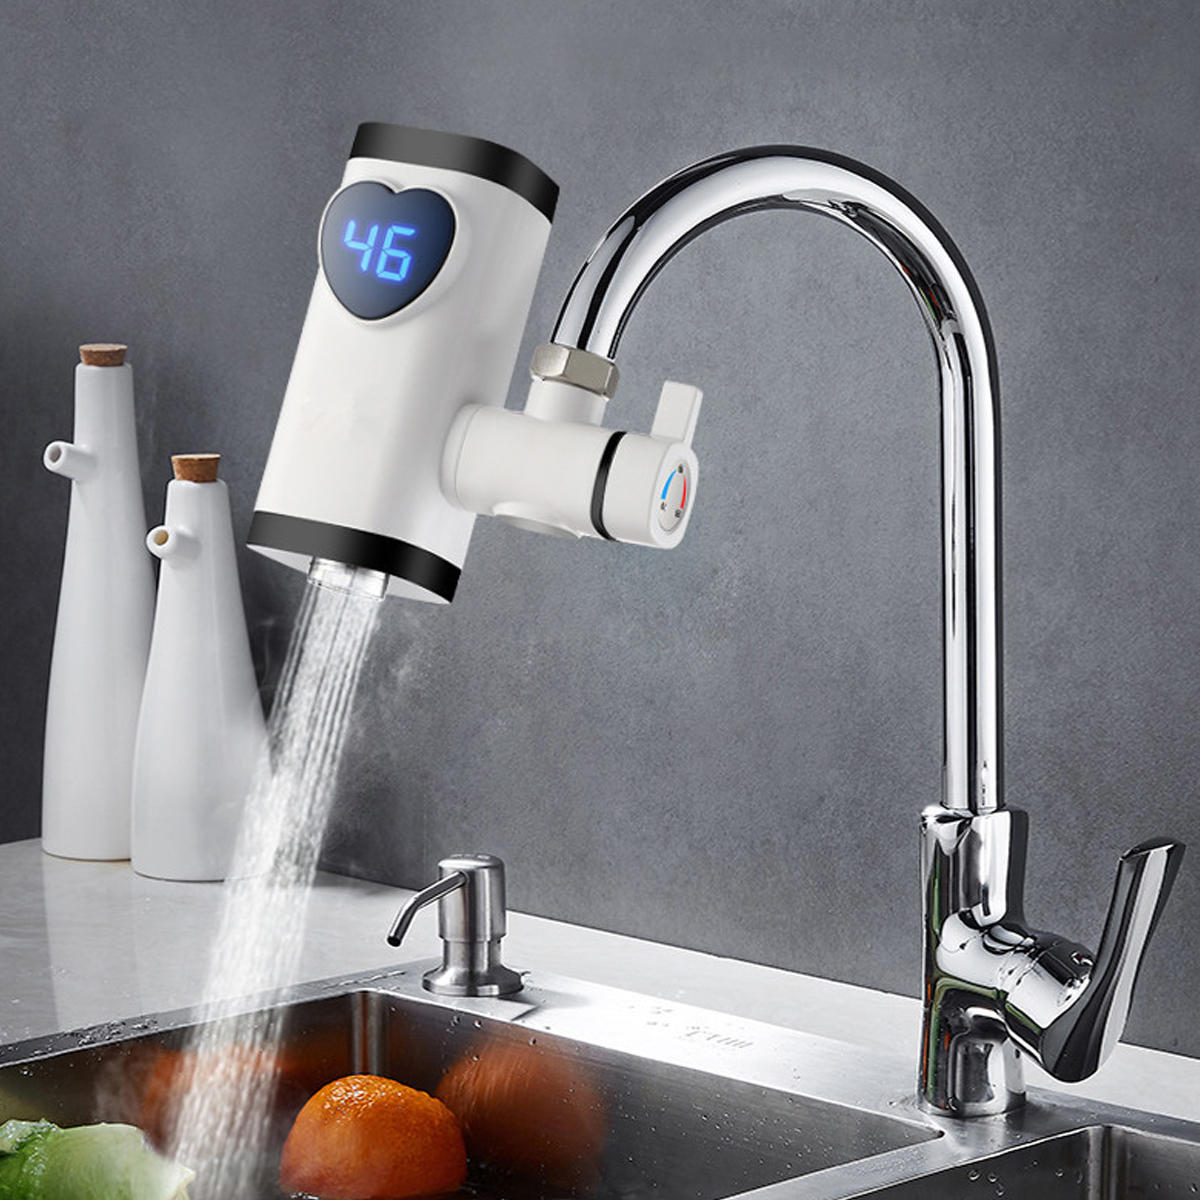 Faucet Tap Instant Hot Water Heater